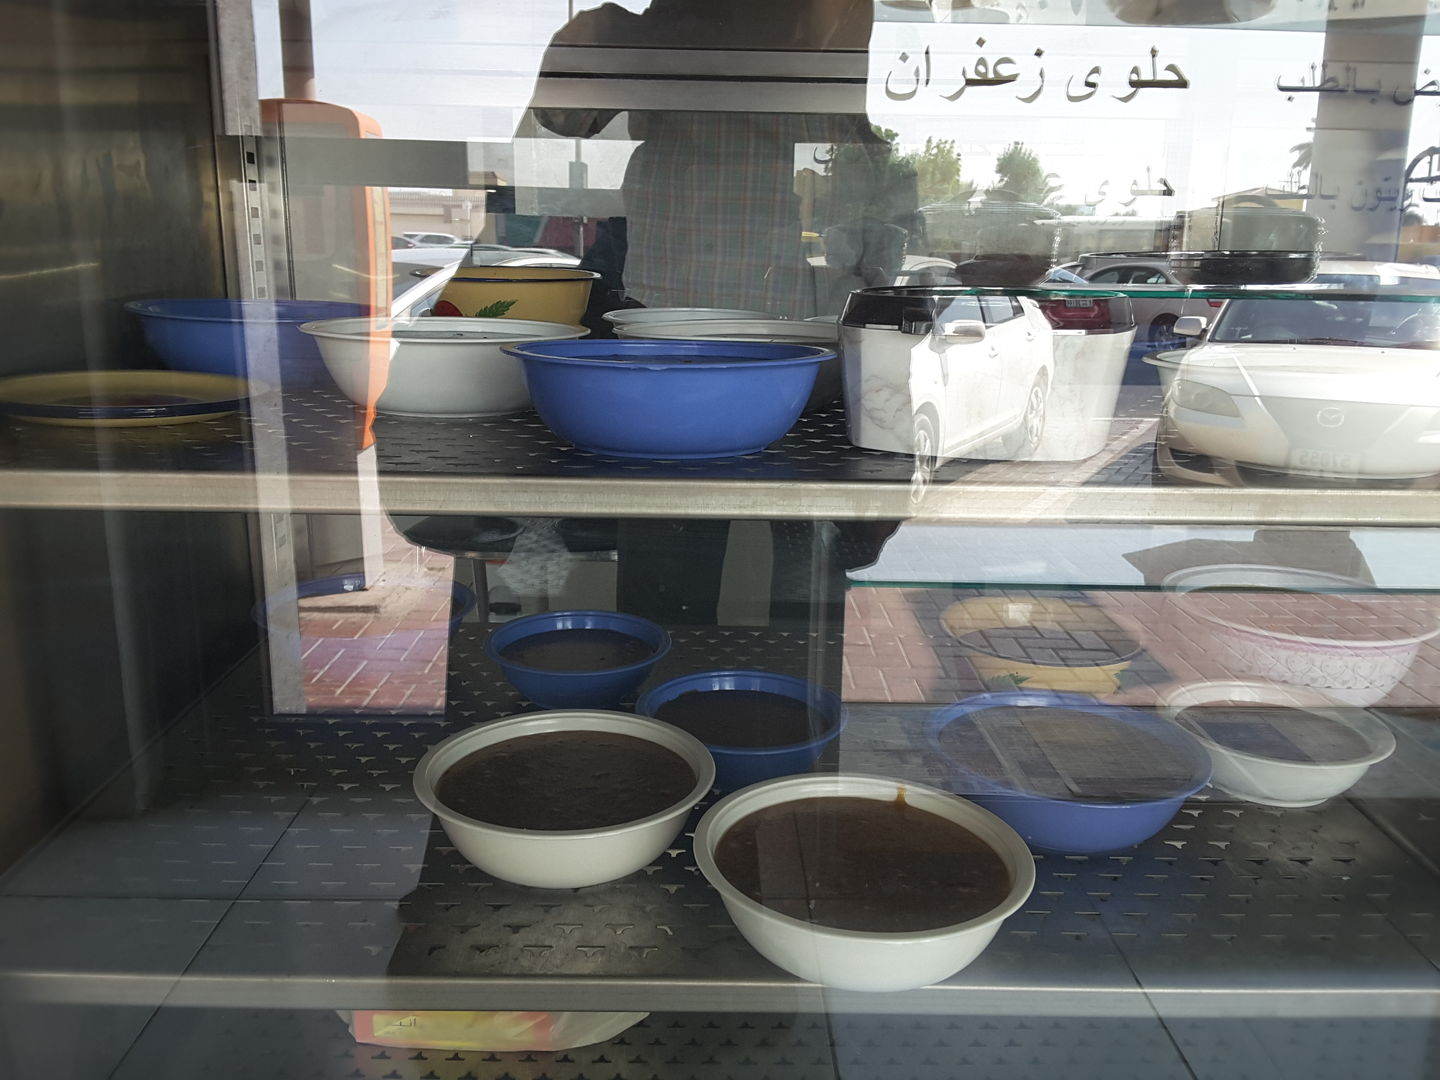 HiDubai-business-omani-sweets-food-beverage-bakeries-desserts-sweets-al-qusais-2-dubai-2